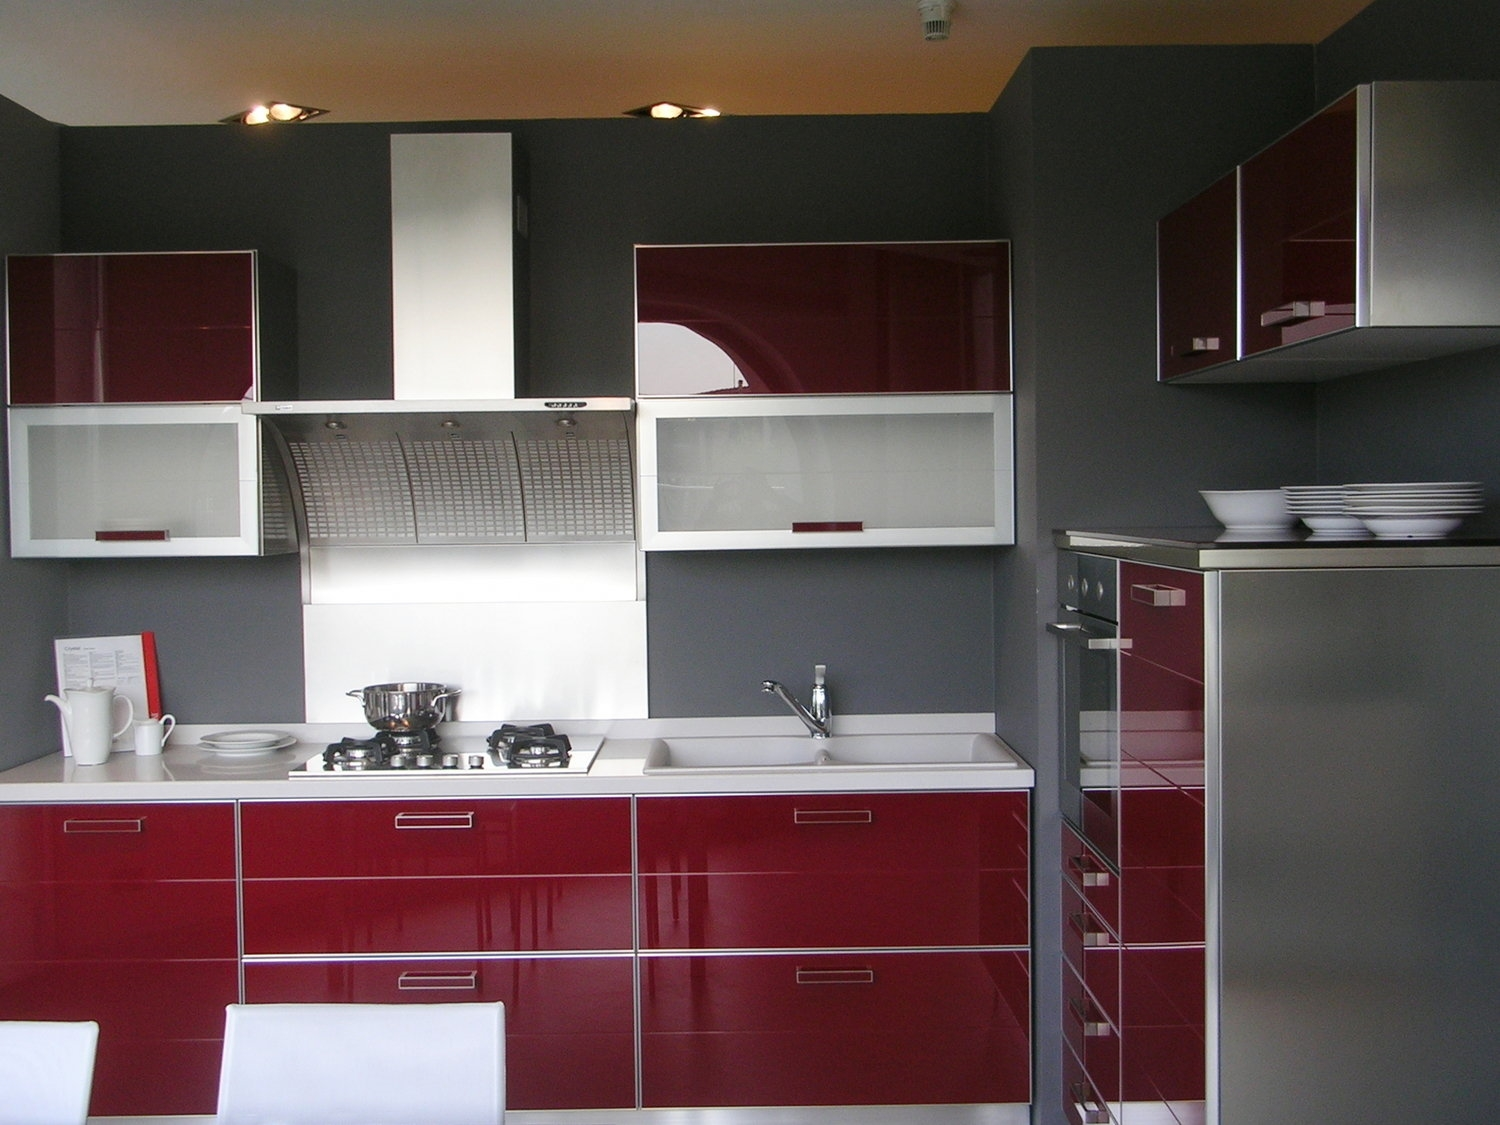 Cucina Midacharme Scavolini Crystal Vetro Rosso With Cucina Rossa